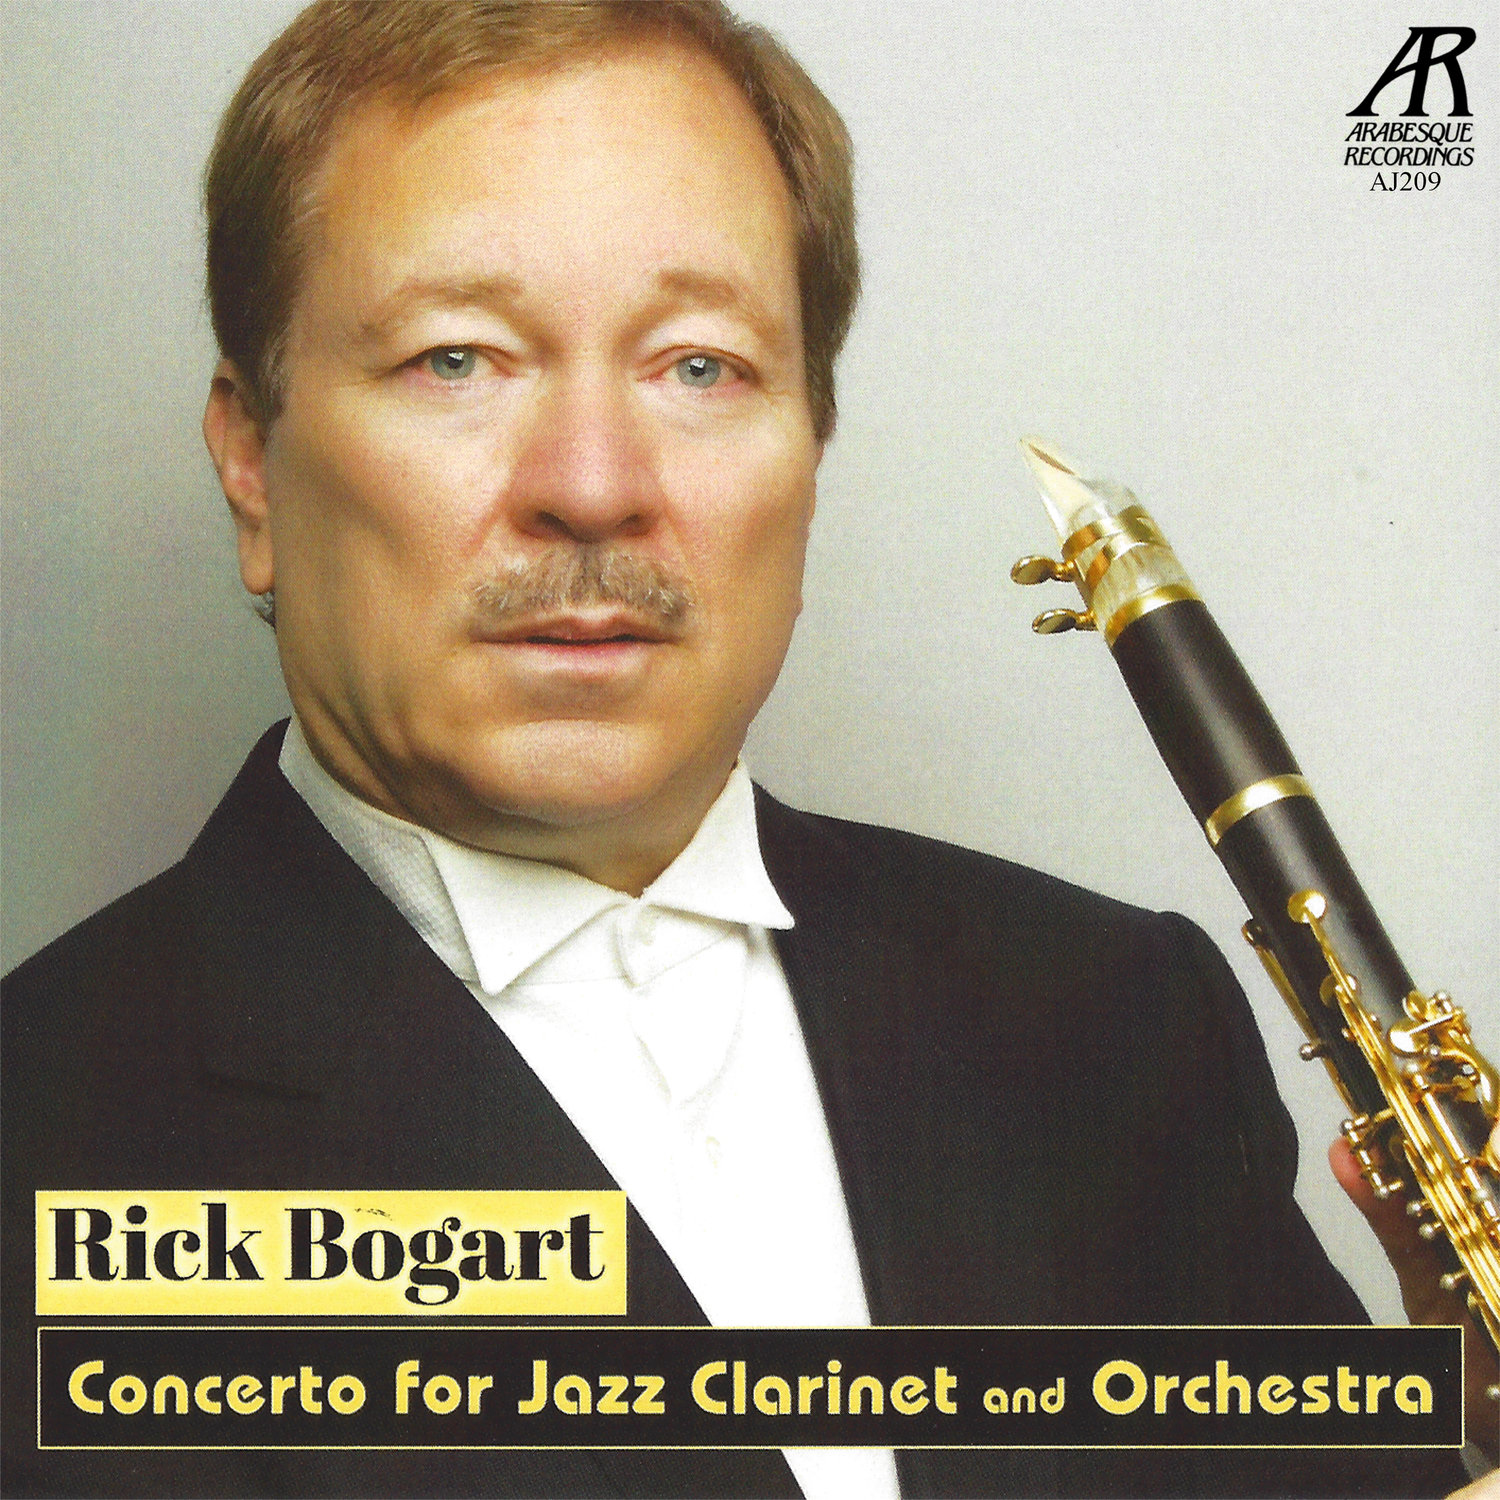 AJ0209  | Clarinet For Jazz Clarinet and Orchestra |  Rick Bogart